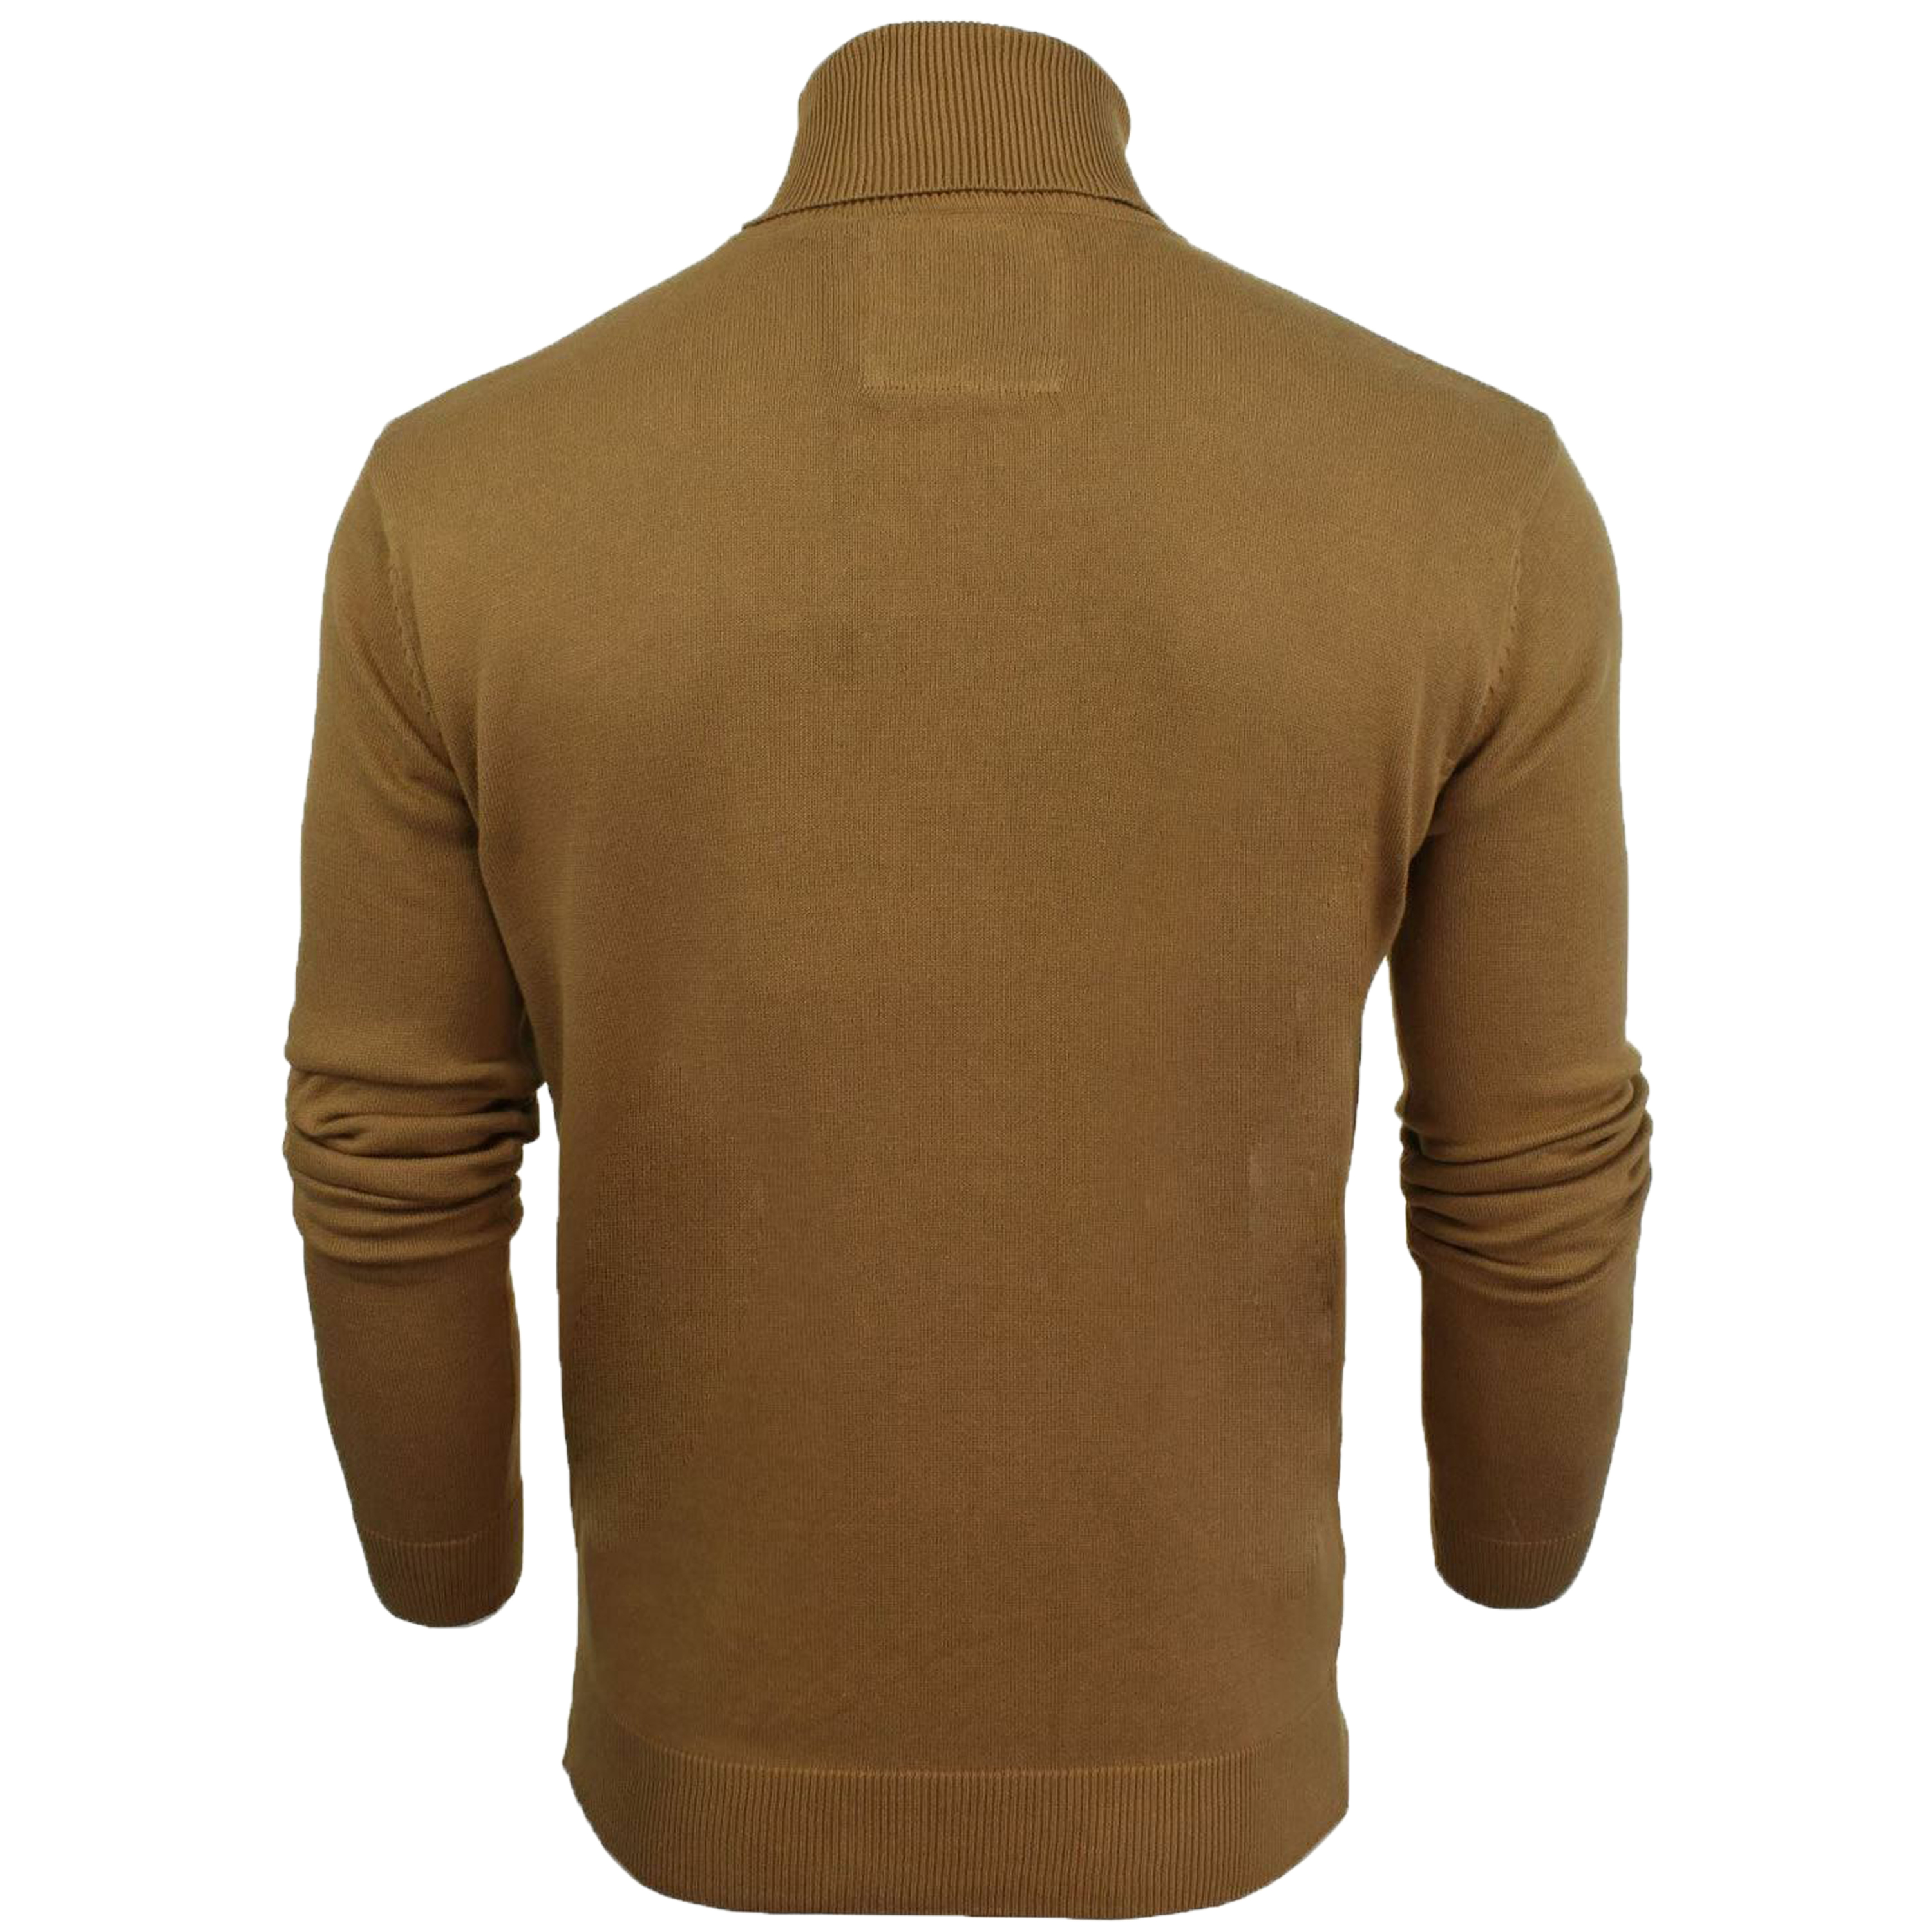 Mens-Brave-Soul-HUME-Roll-Neck-Polo-Light-Cotton-Knitwear-Jumper-Sweater-Winter thumbnail 12